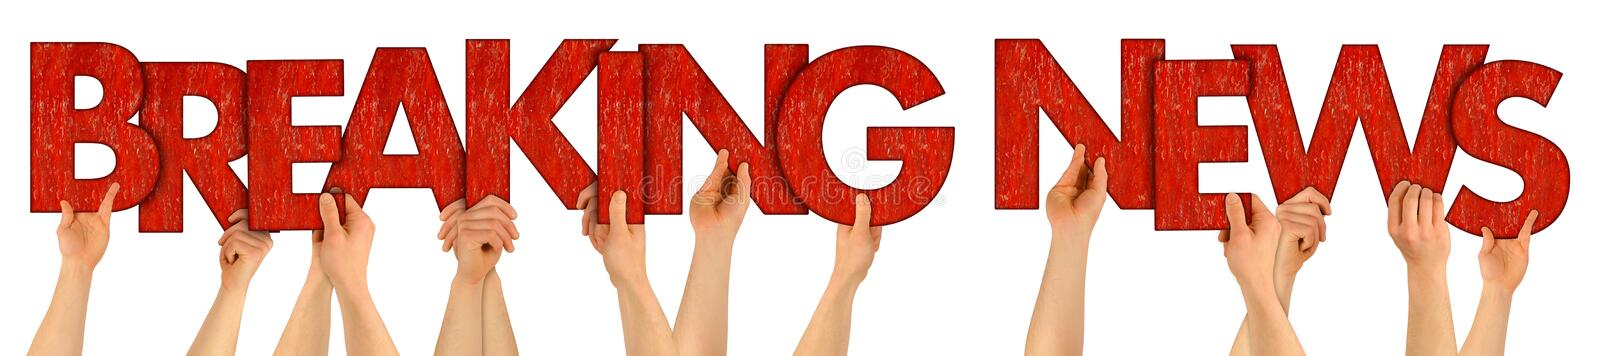 BREAKING NEWS people holding up red wooden letters stock photography